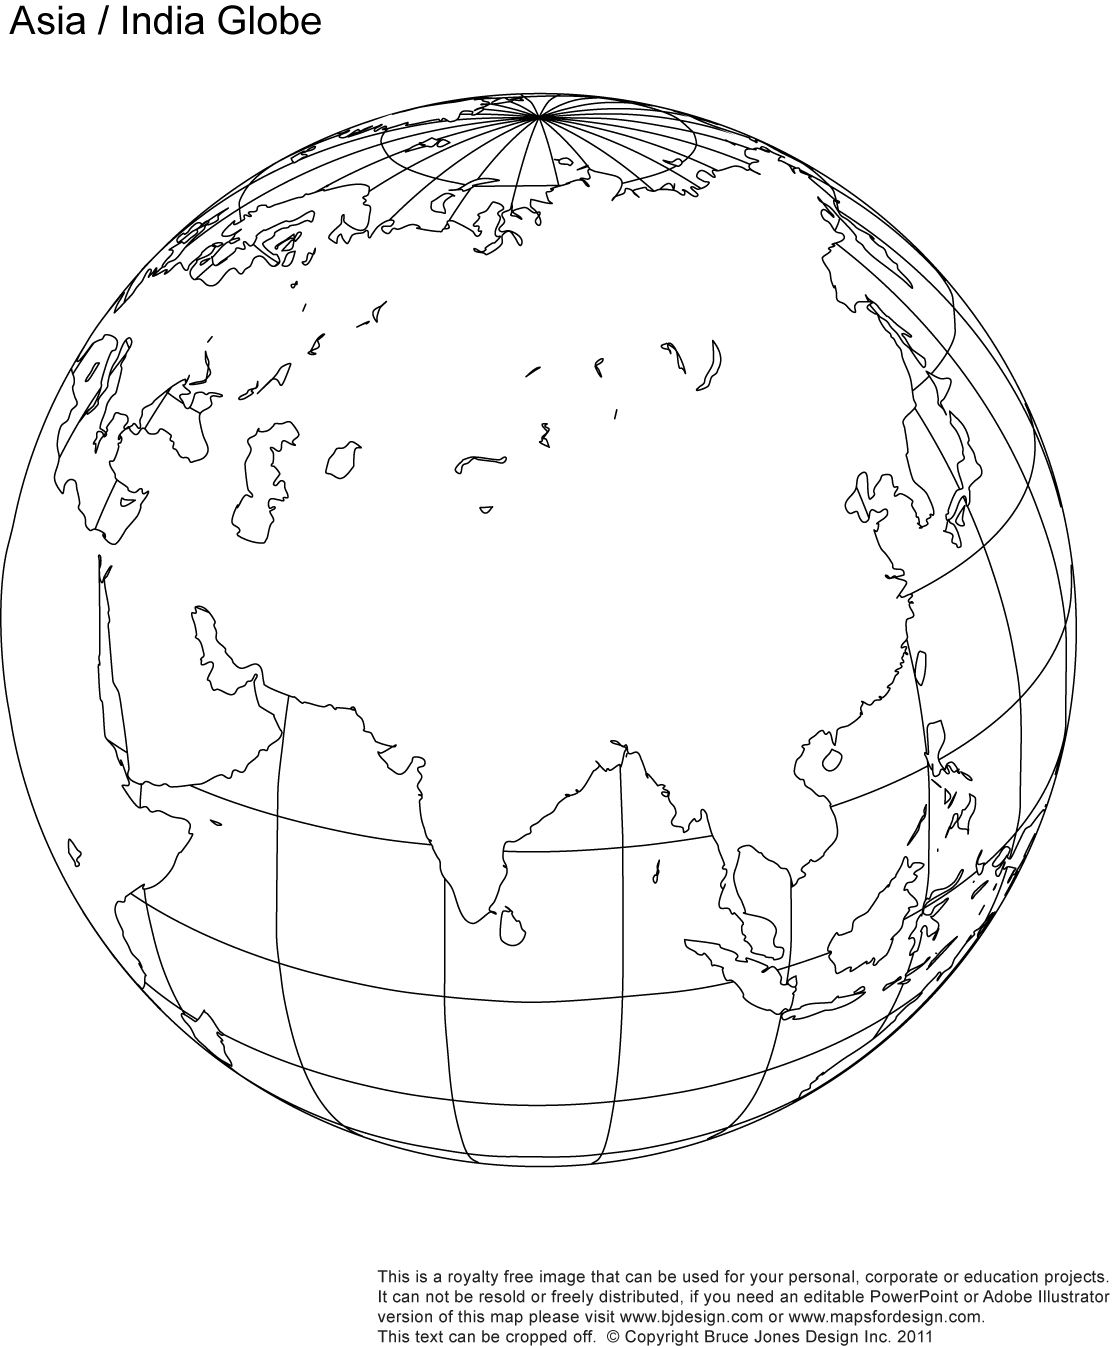 Fill In AsiaIndia Blank Globe Map Classroom Pinterest Asia - India map with latitude and longitude lines